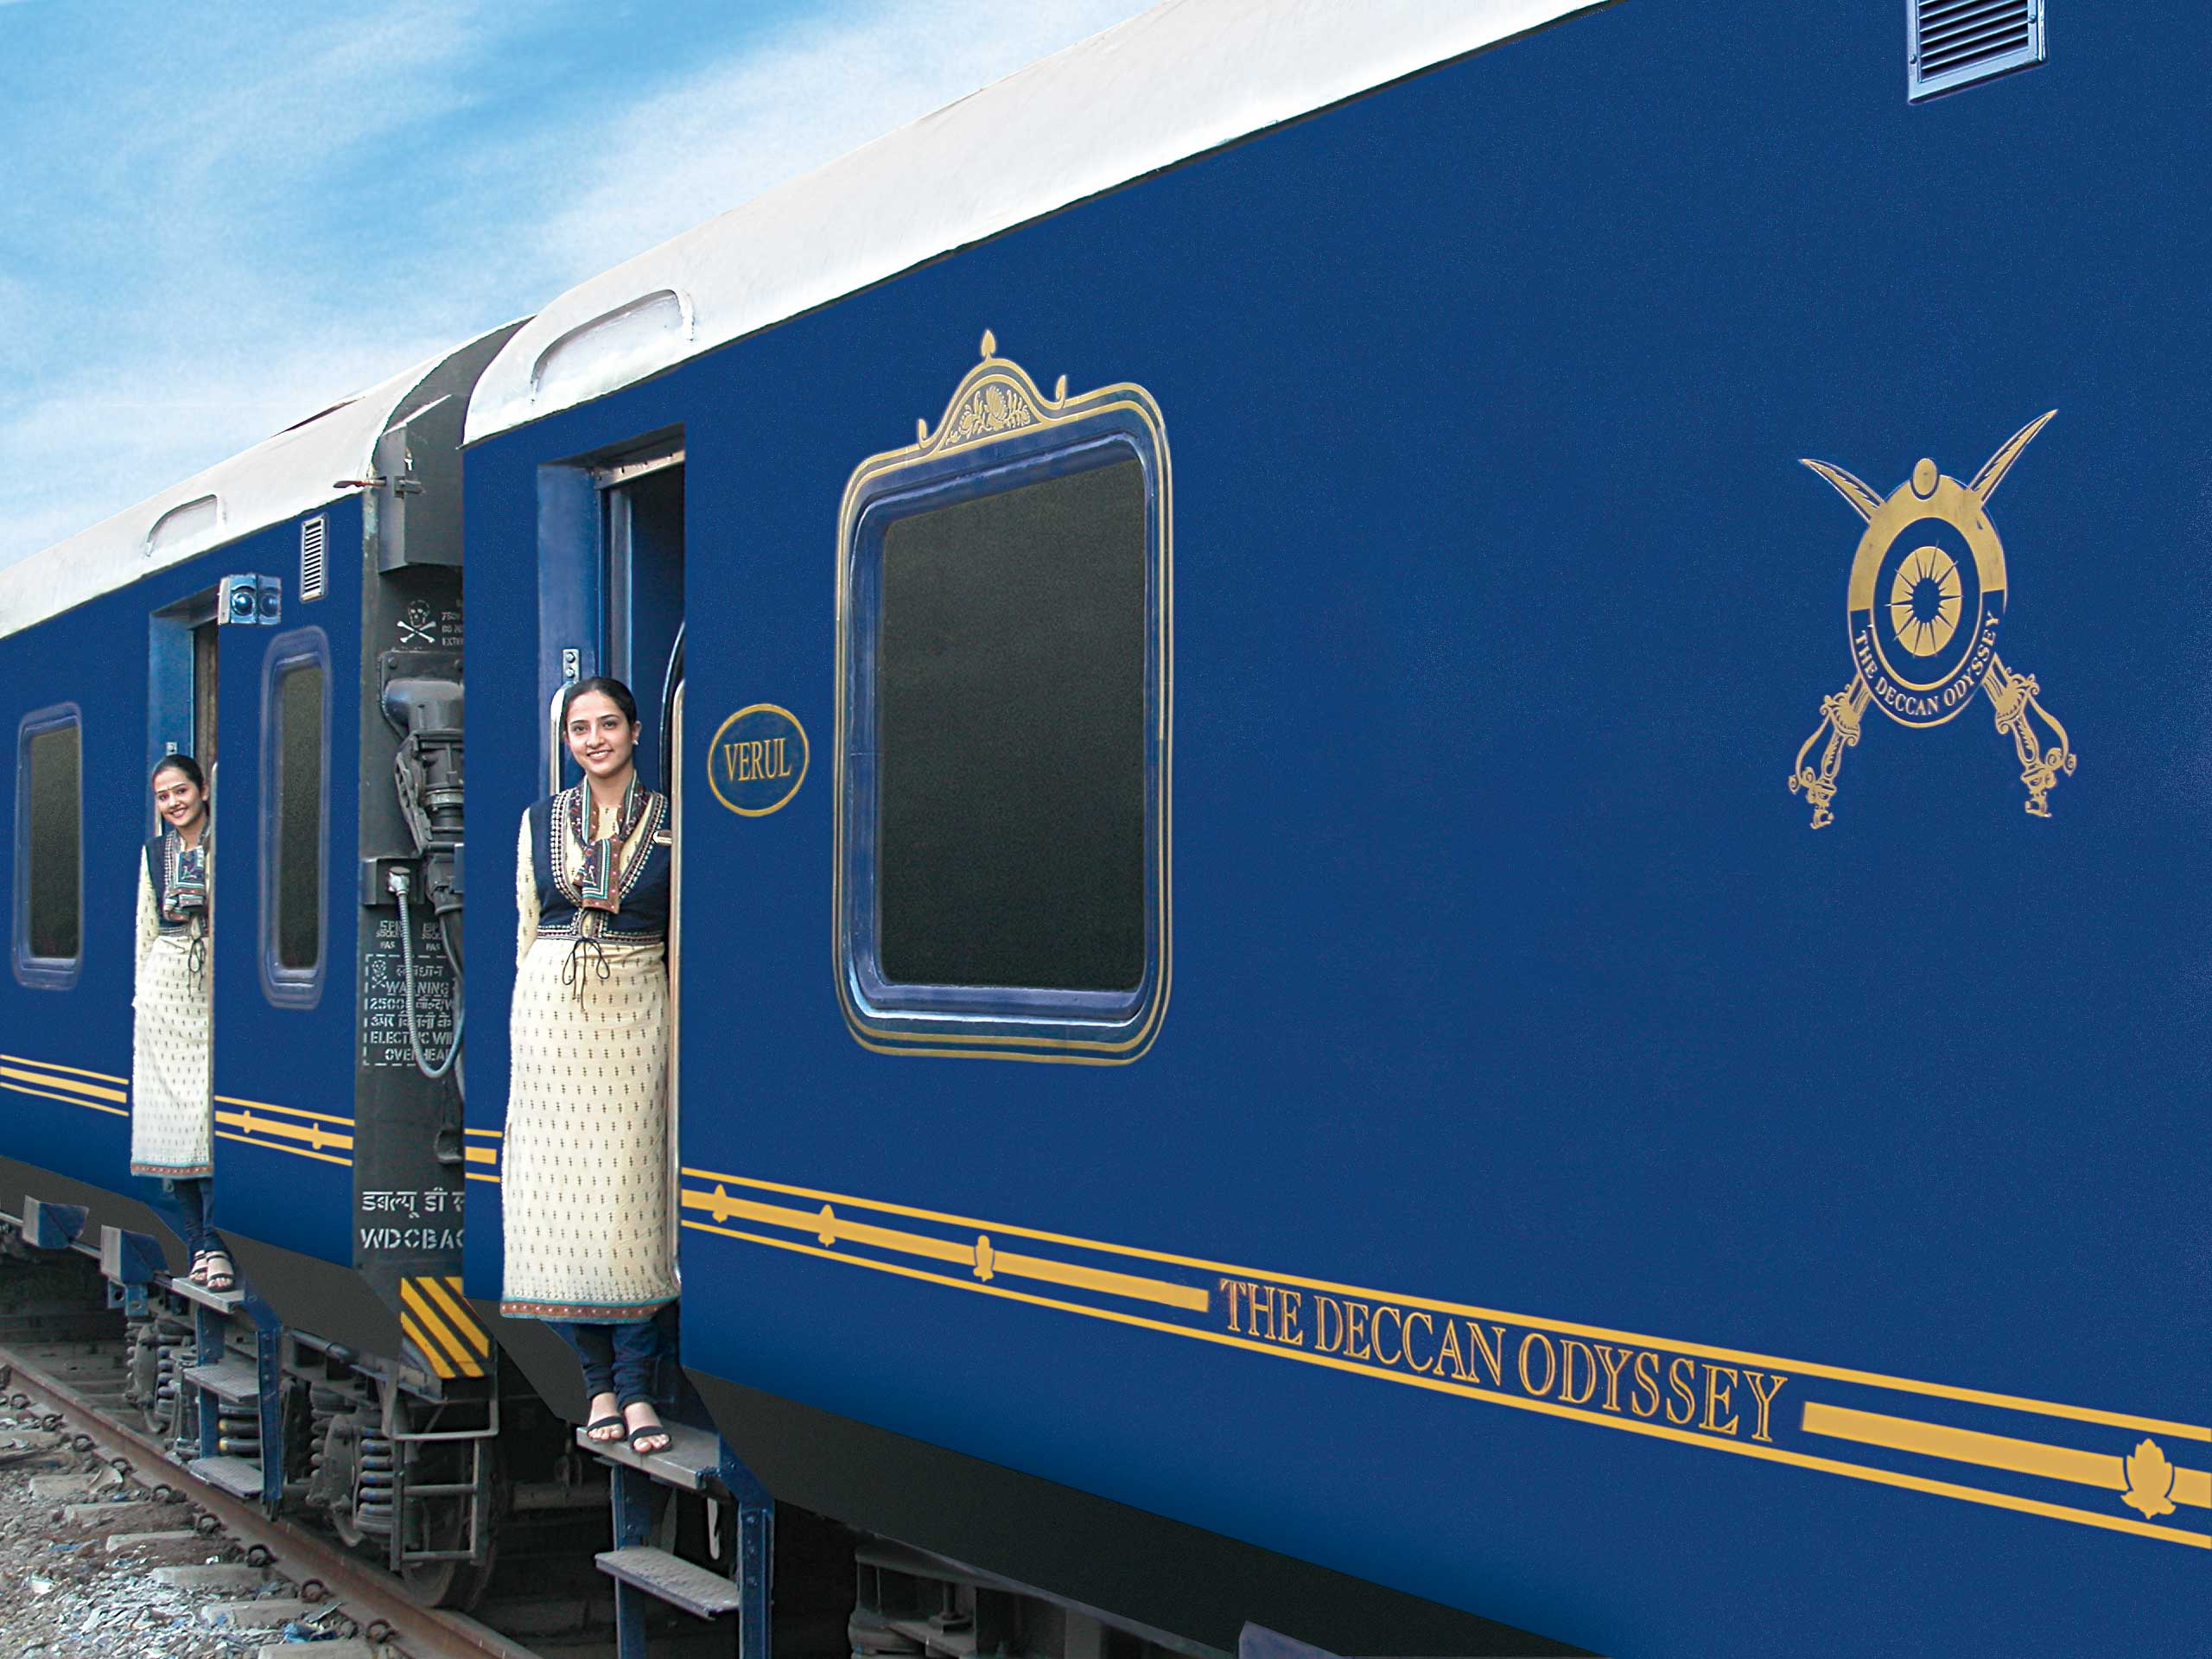 The Deccan Odyssey Train